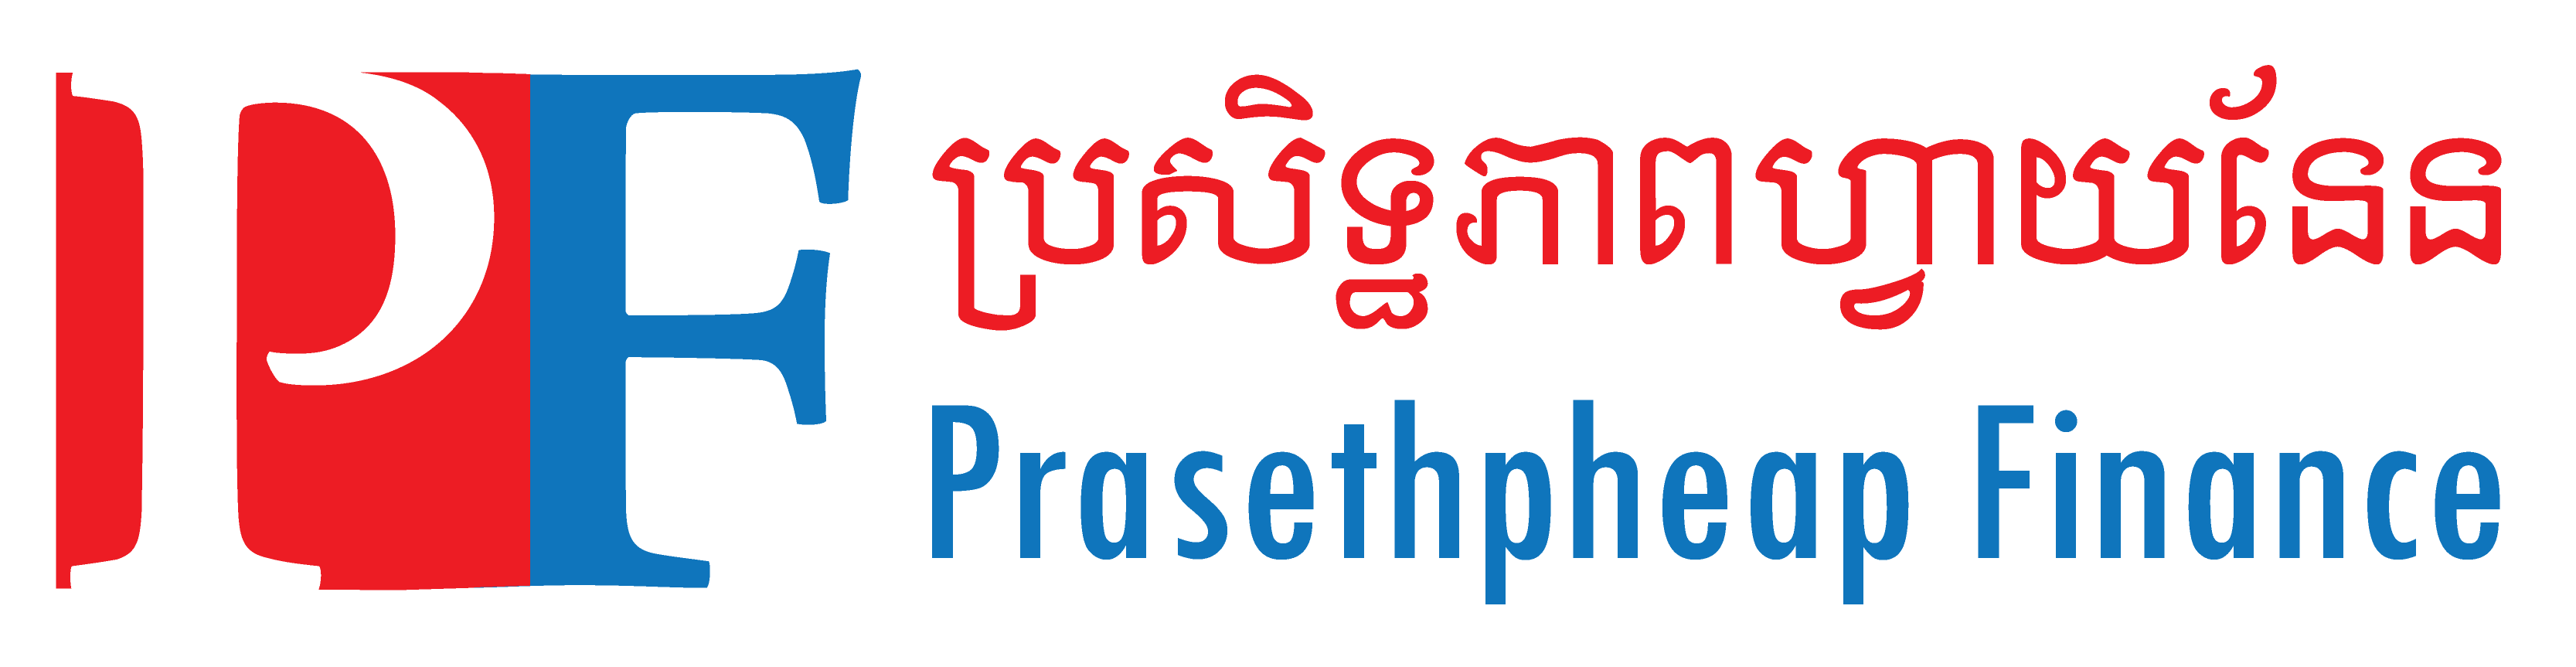 Prasethpheap Finance